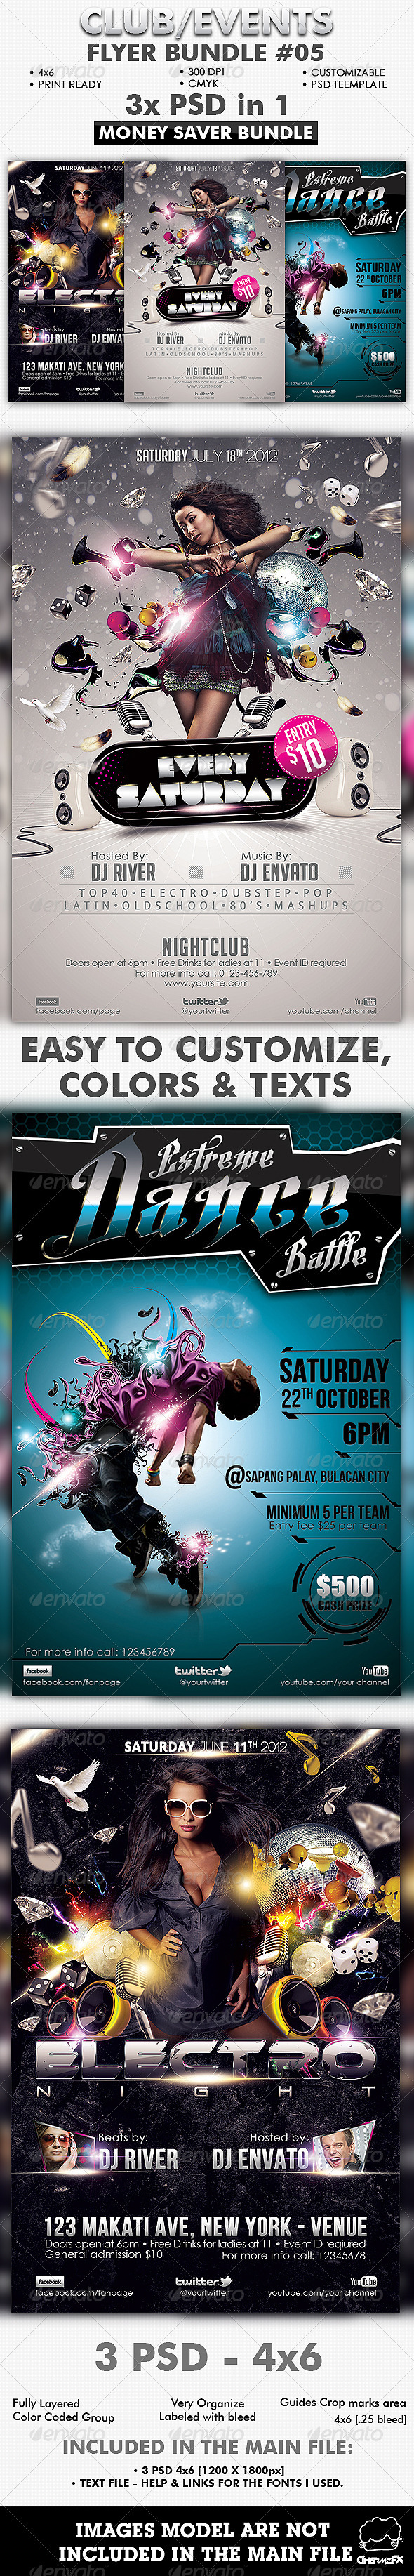 GraphicRiver Club Events Flyer Bundle #05 2575510